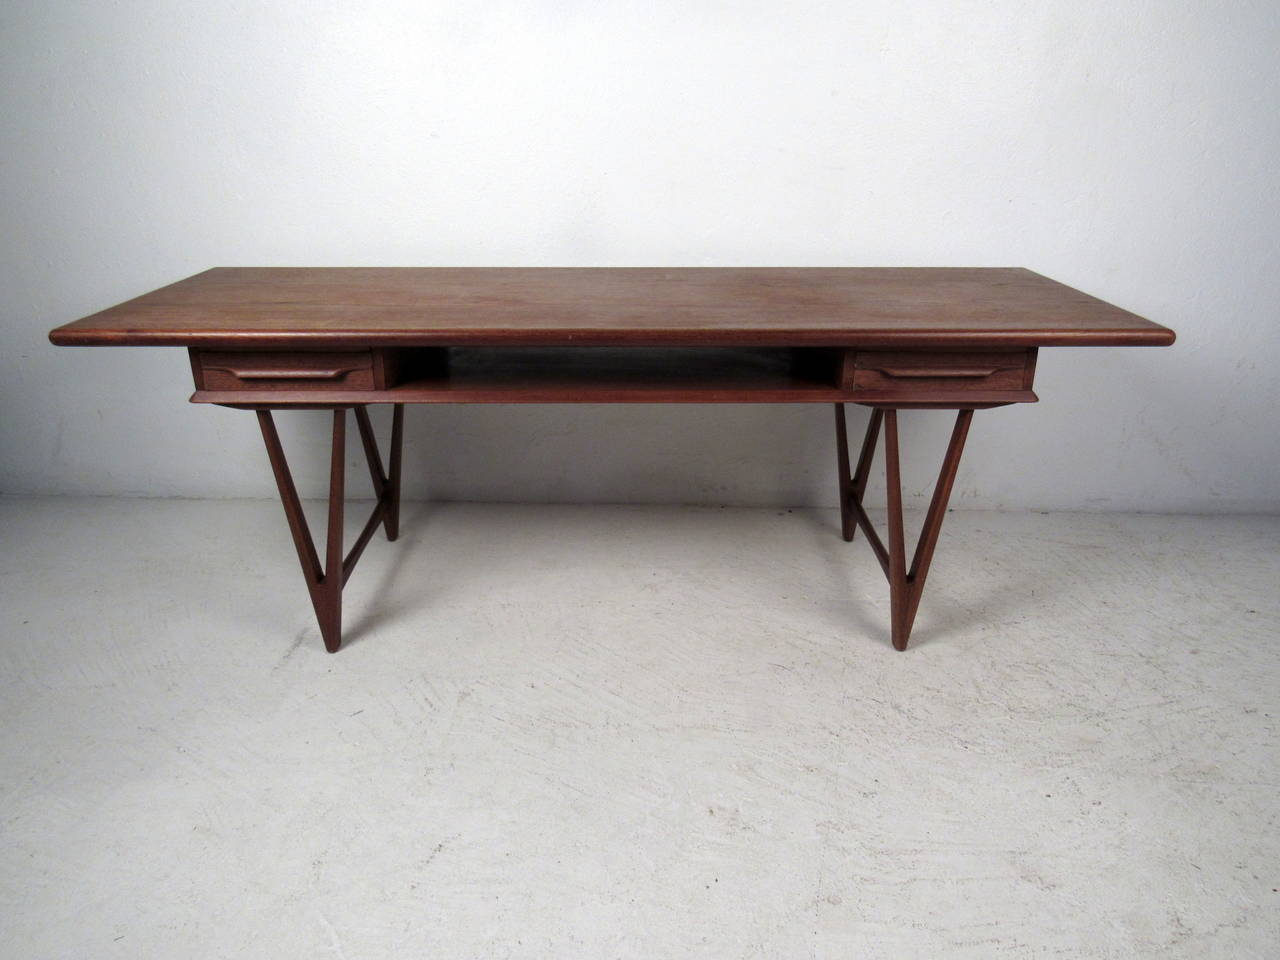 Danish Modern Teak Coffee Table with Two Drawers by E W